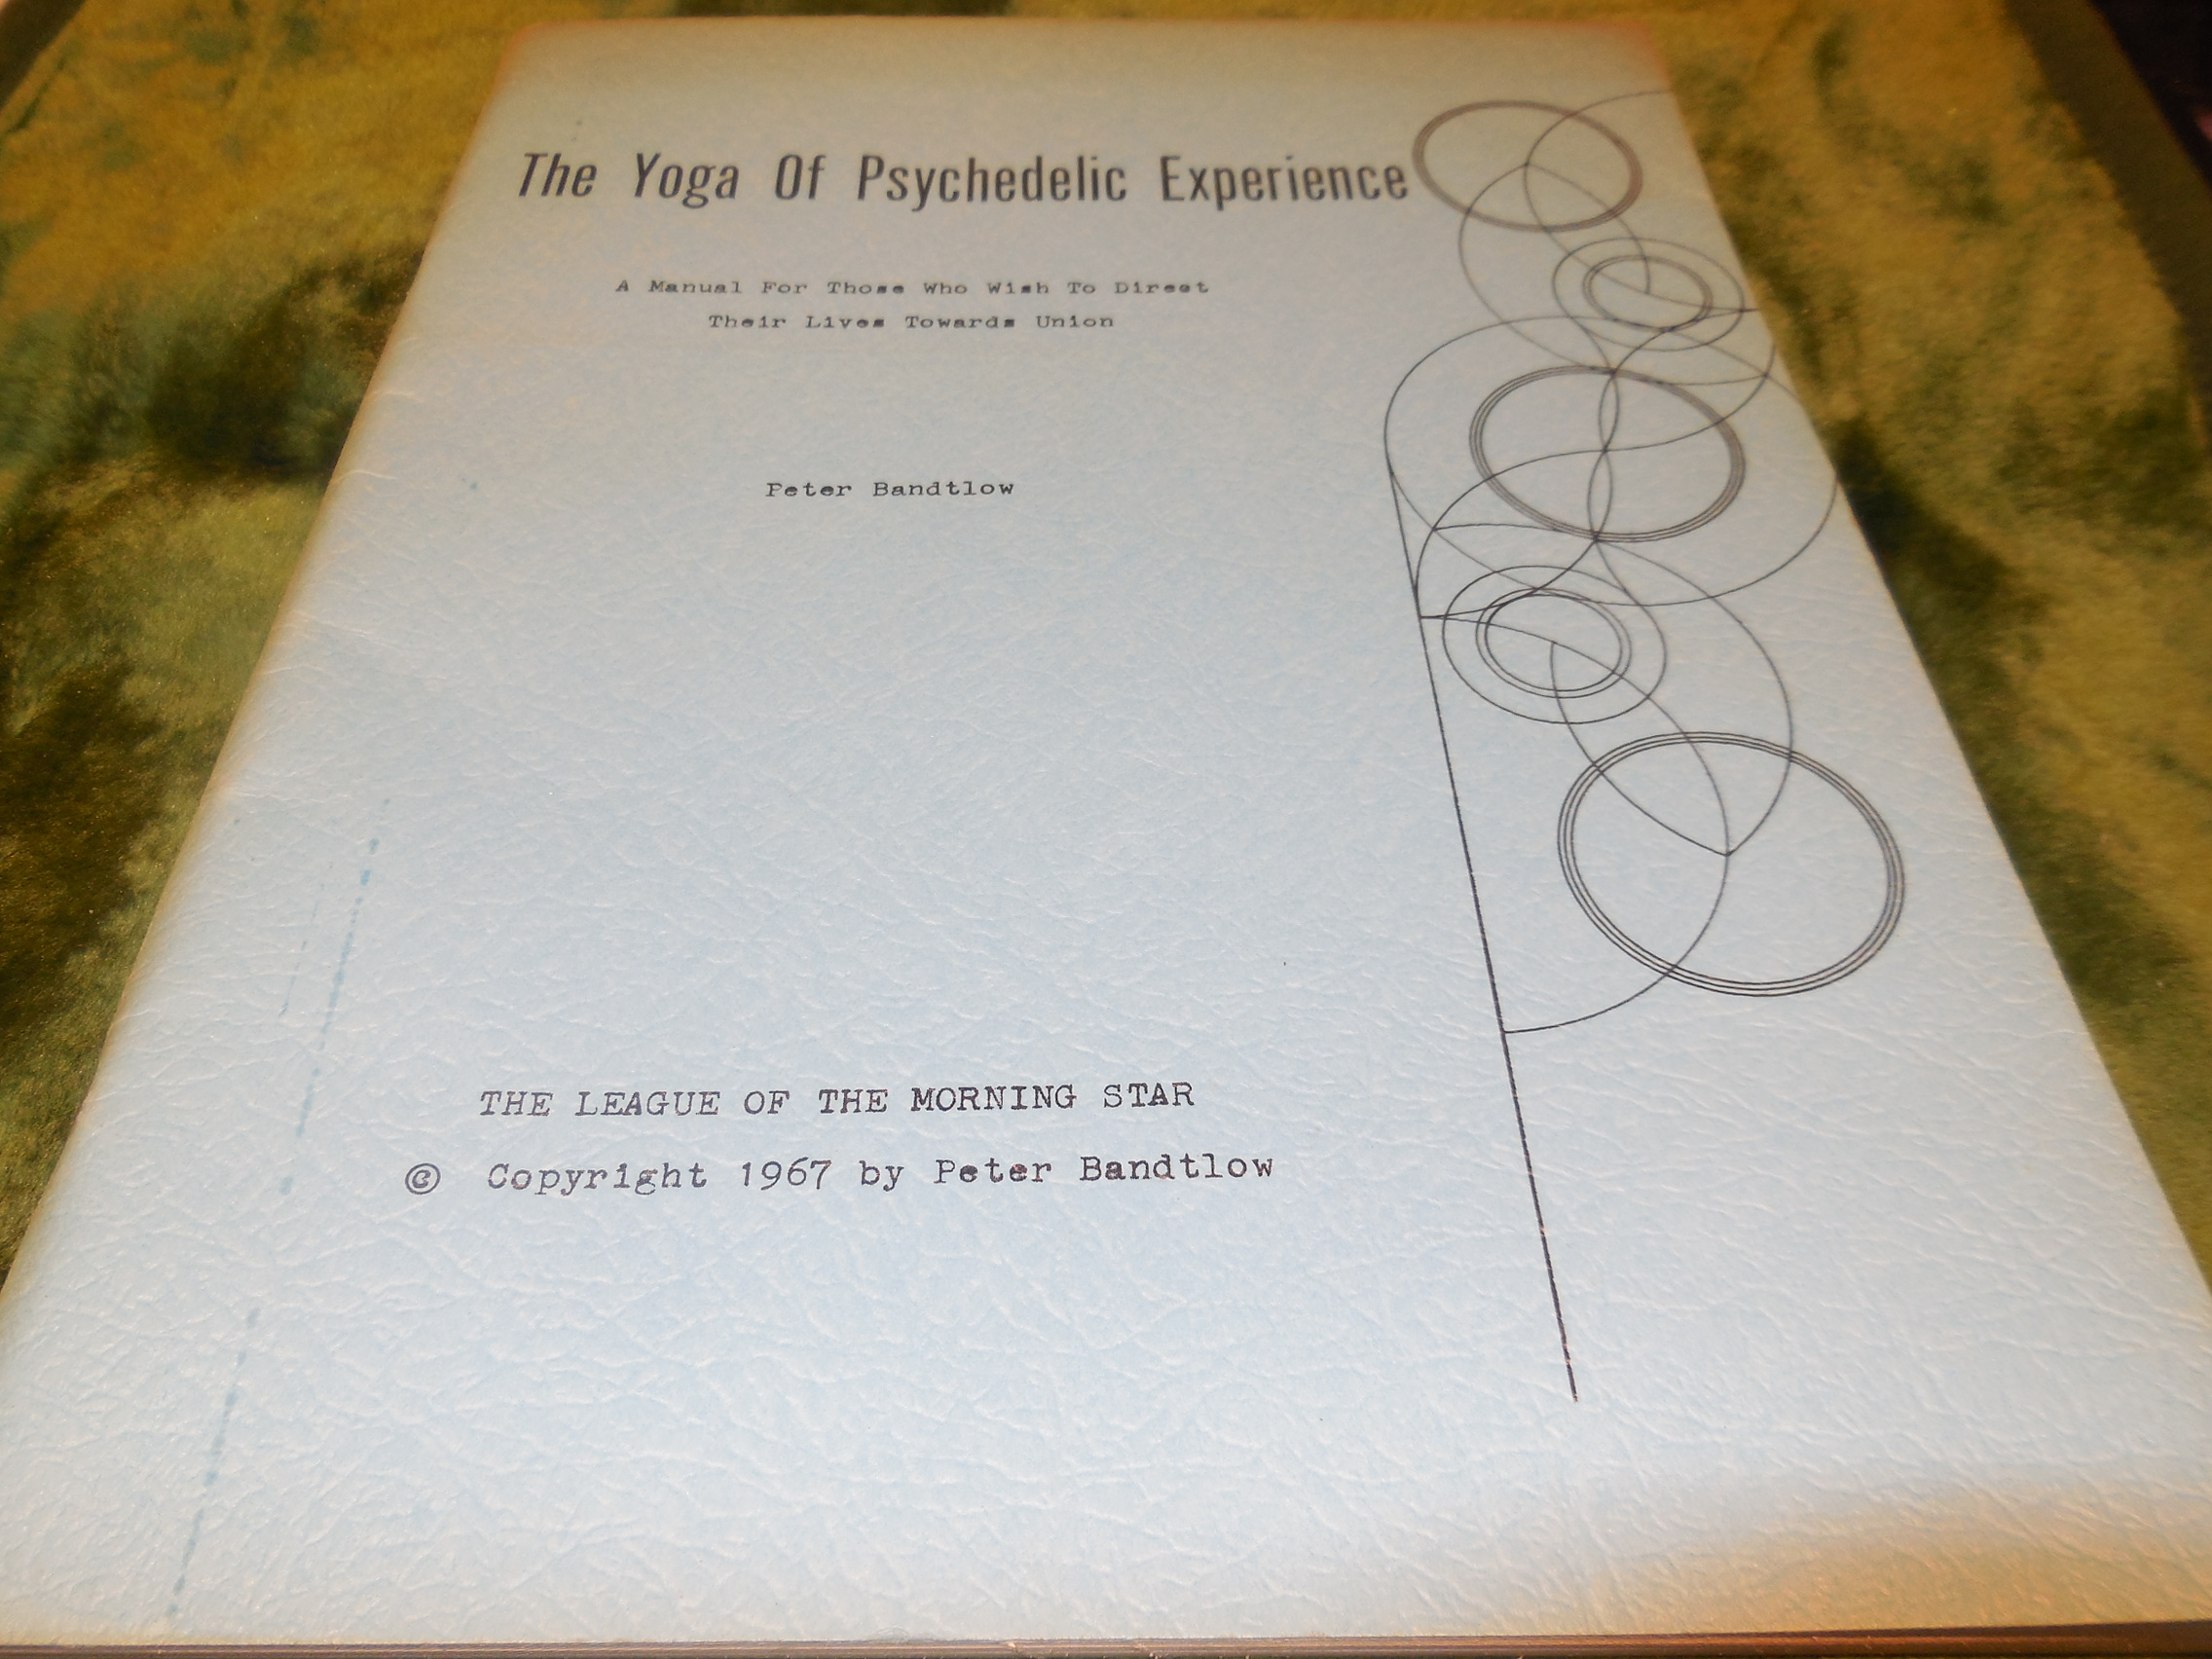 Image for The Yoga of Psychedelic Experience - A Manual for Those Who Wish to Direct Their Lives Towards Union